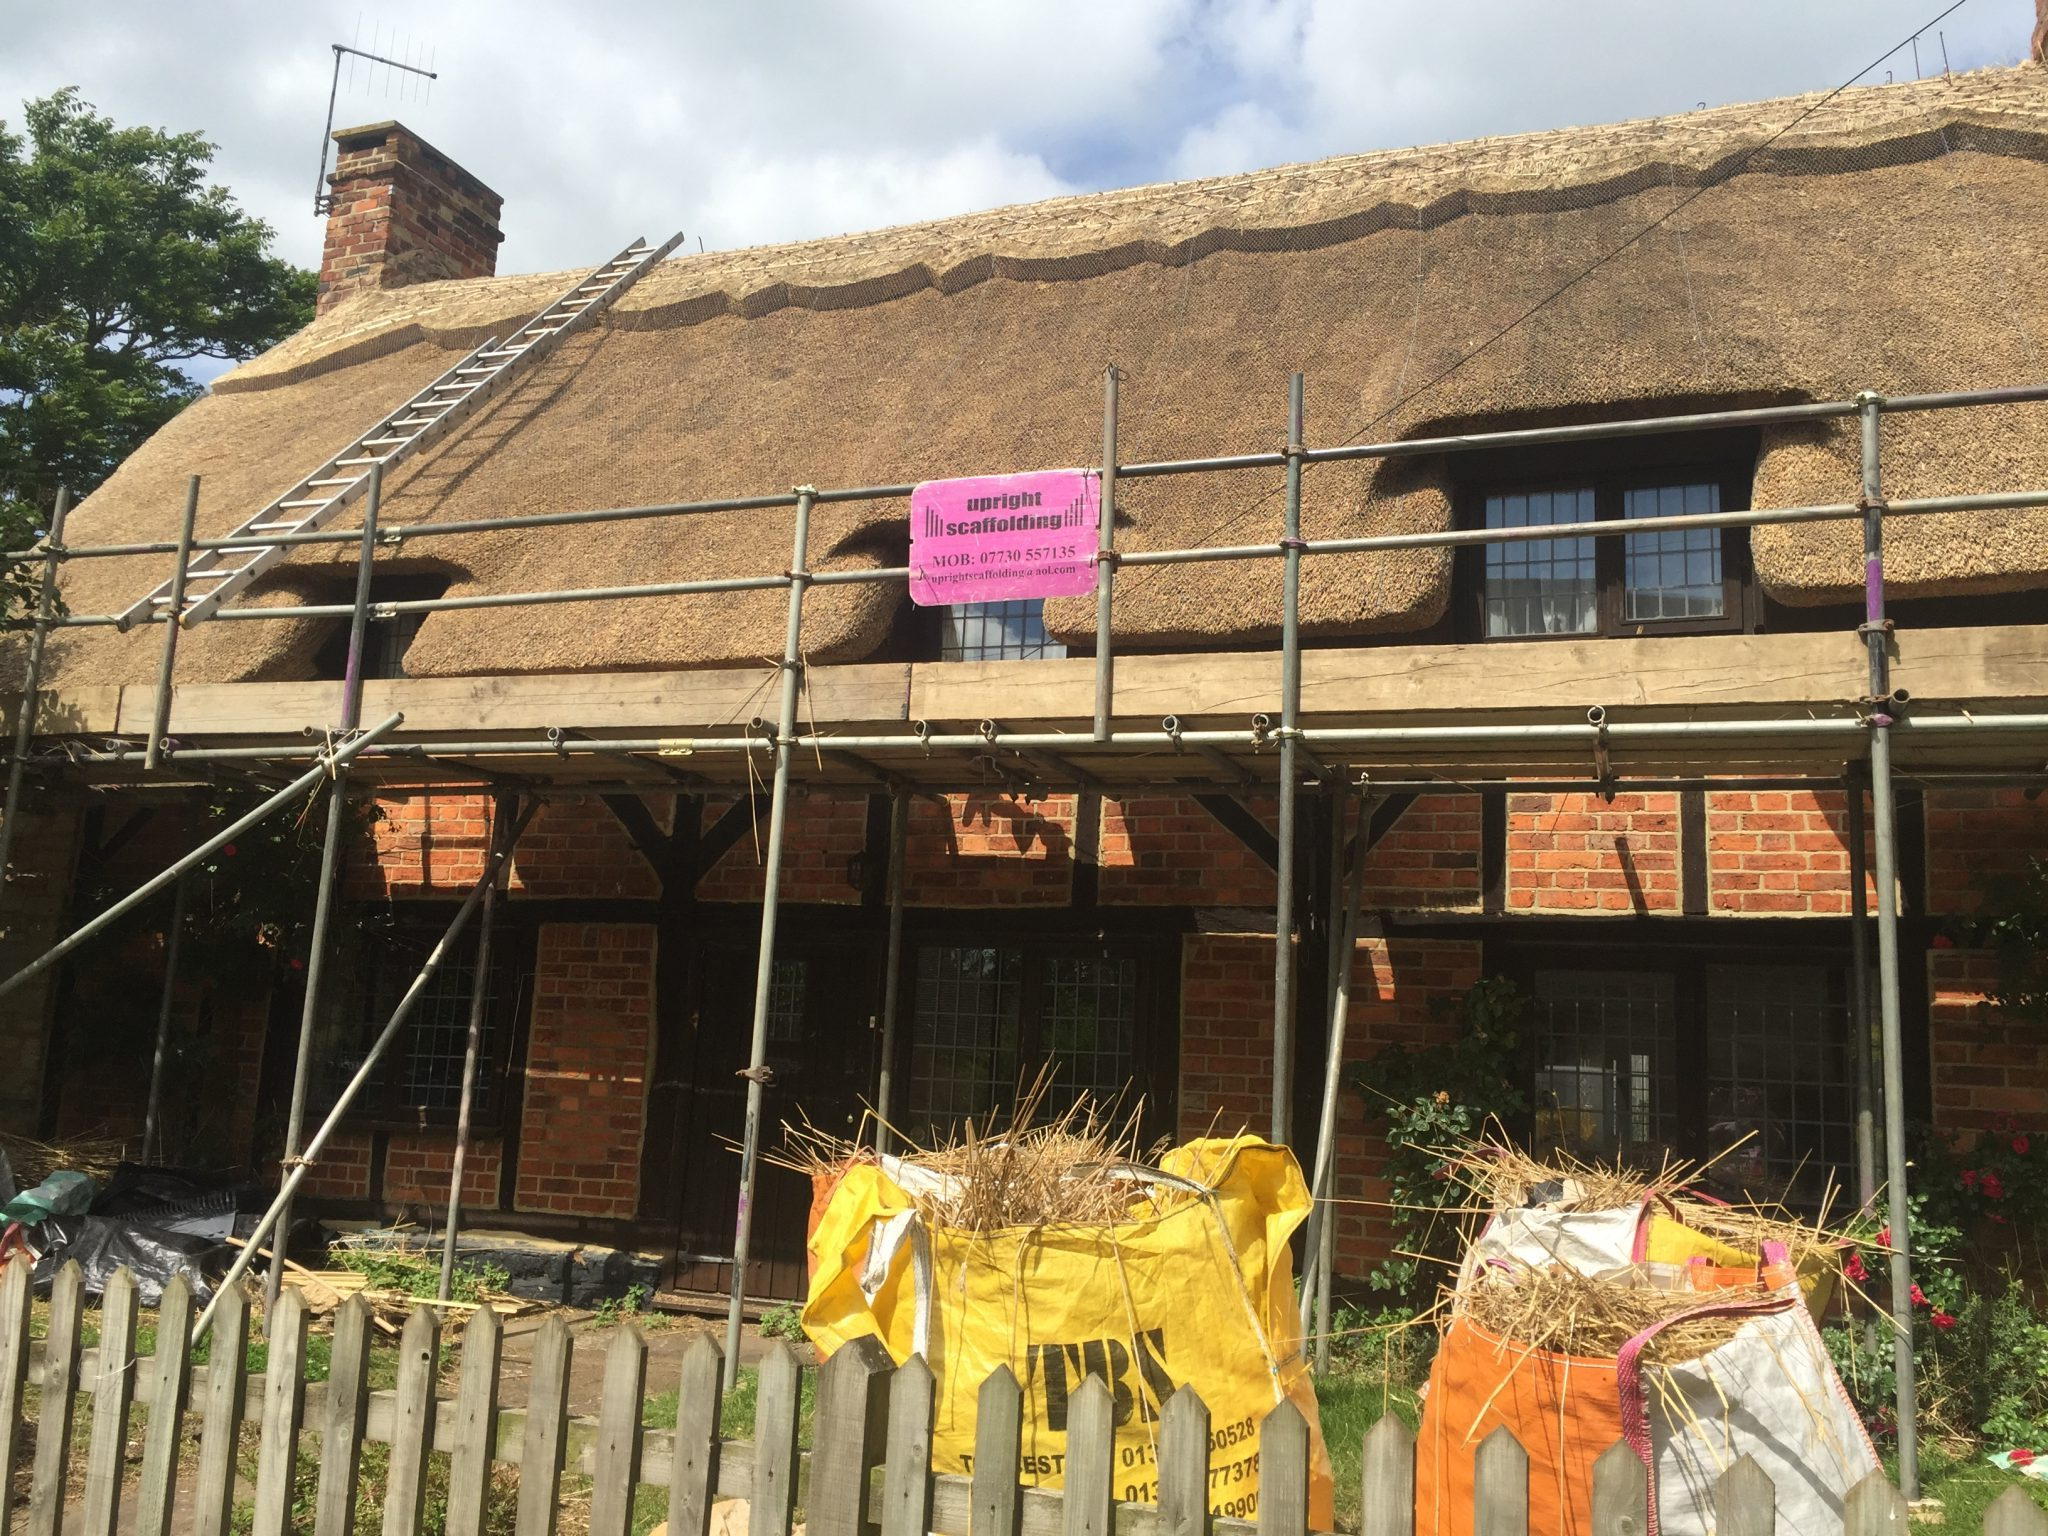 water reed thatched roof on brick house with scaffolding